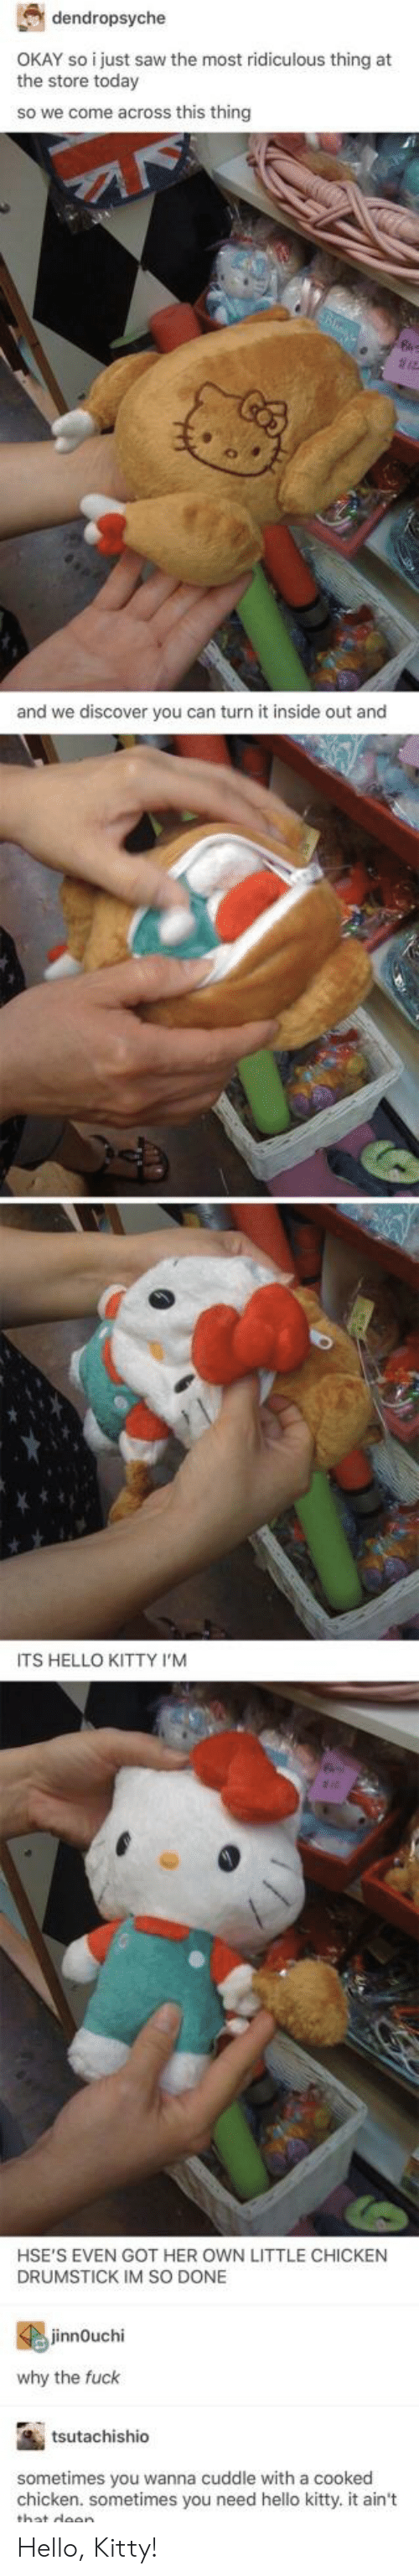 Hello, Inside Out, and Saw: dendropsyche  OKAY so i just saw the most ridiculous thing at  the store today  so we come across this thingg  and we discover you can turn it inside out and  ITS HELLO KITTY I'M  HSE'S EVEN GOT HER OWN LITTLE CHICKEN  DRUMSTICK IM SO DONE  jinnOuchi  why the fuck  tsutachishio  sometimes you wanna cuddle with a cooked  chicken. sometimes you need hello kitty. it ain't  wllo kittyit an Hello, Kitty!